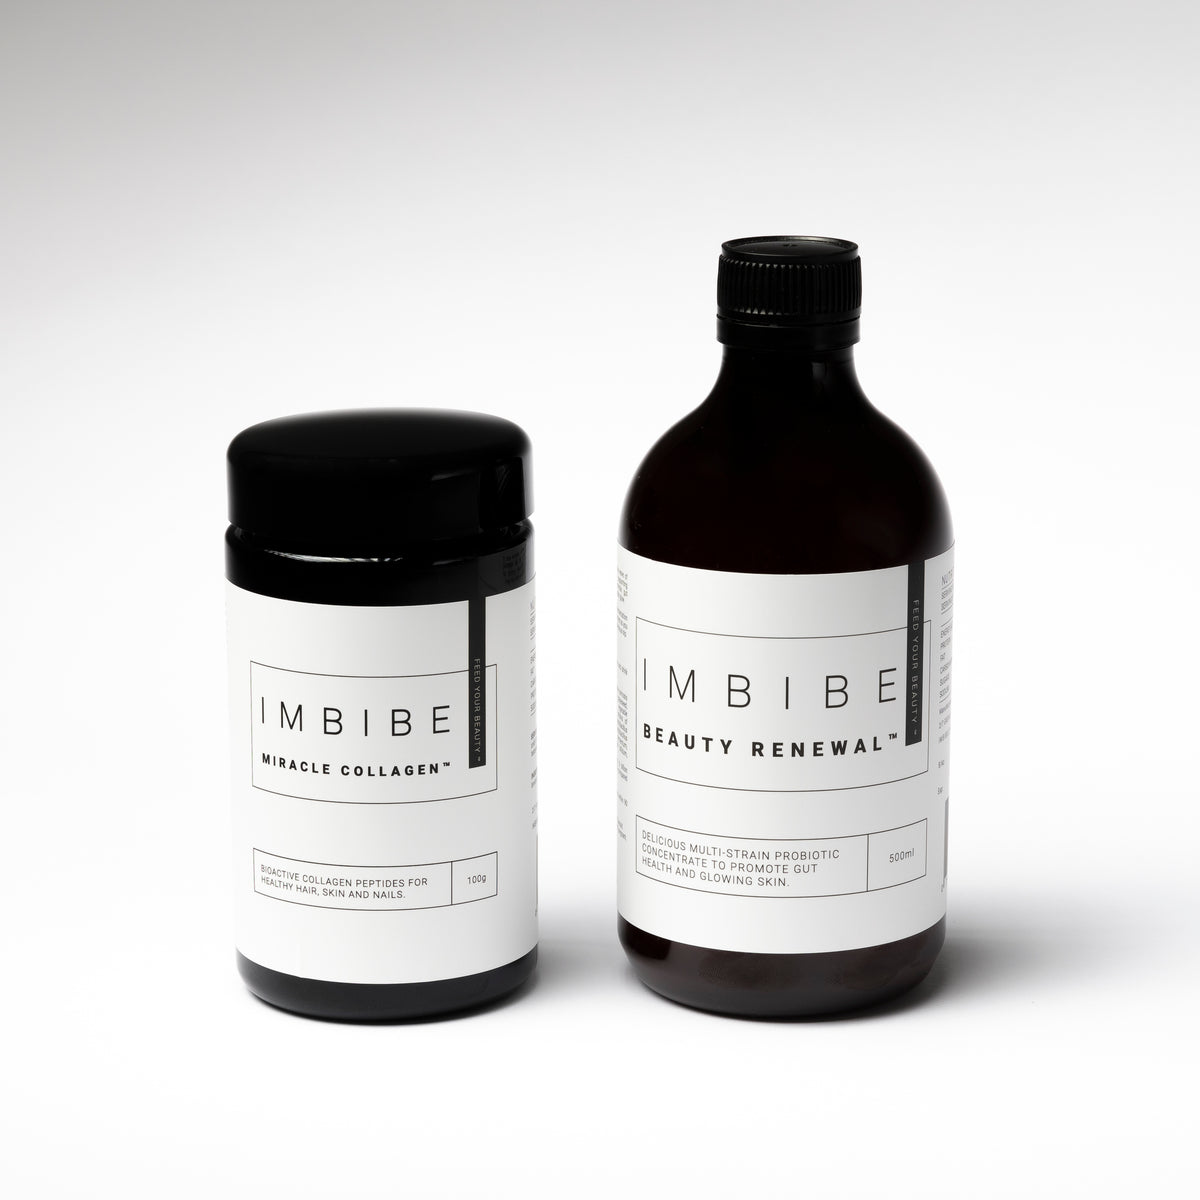 Shop Imbibe The Essential Duo at Skinbase Beauty. Duo includes: Beauty Renewal and Miracle Collagen.